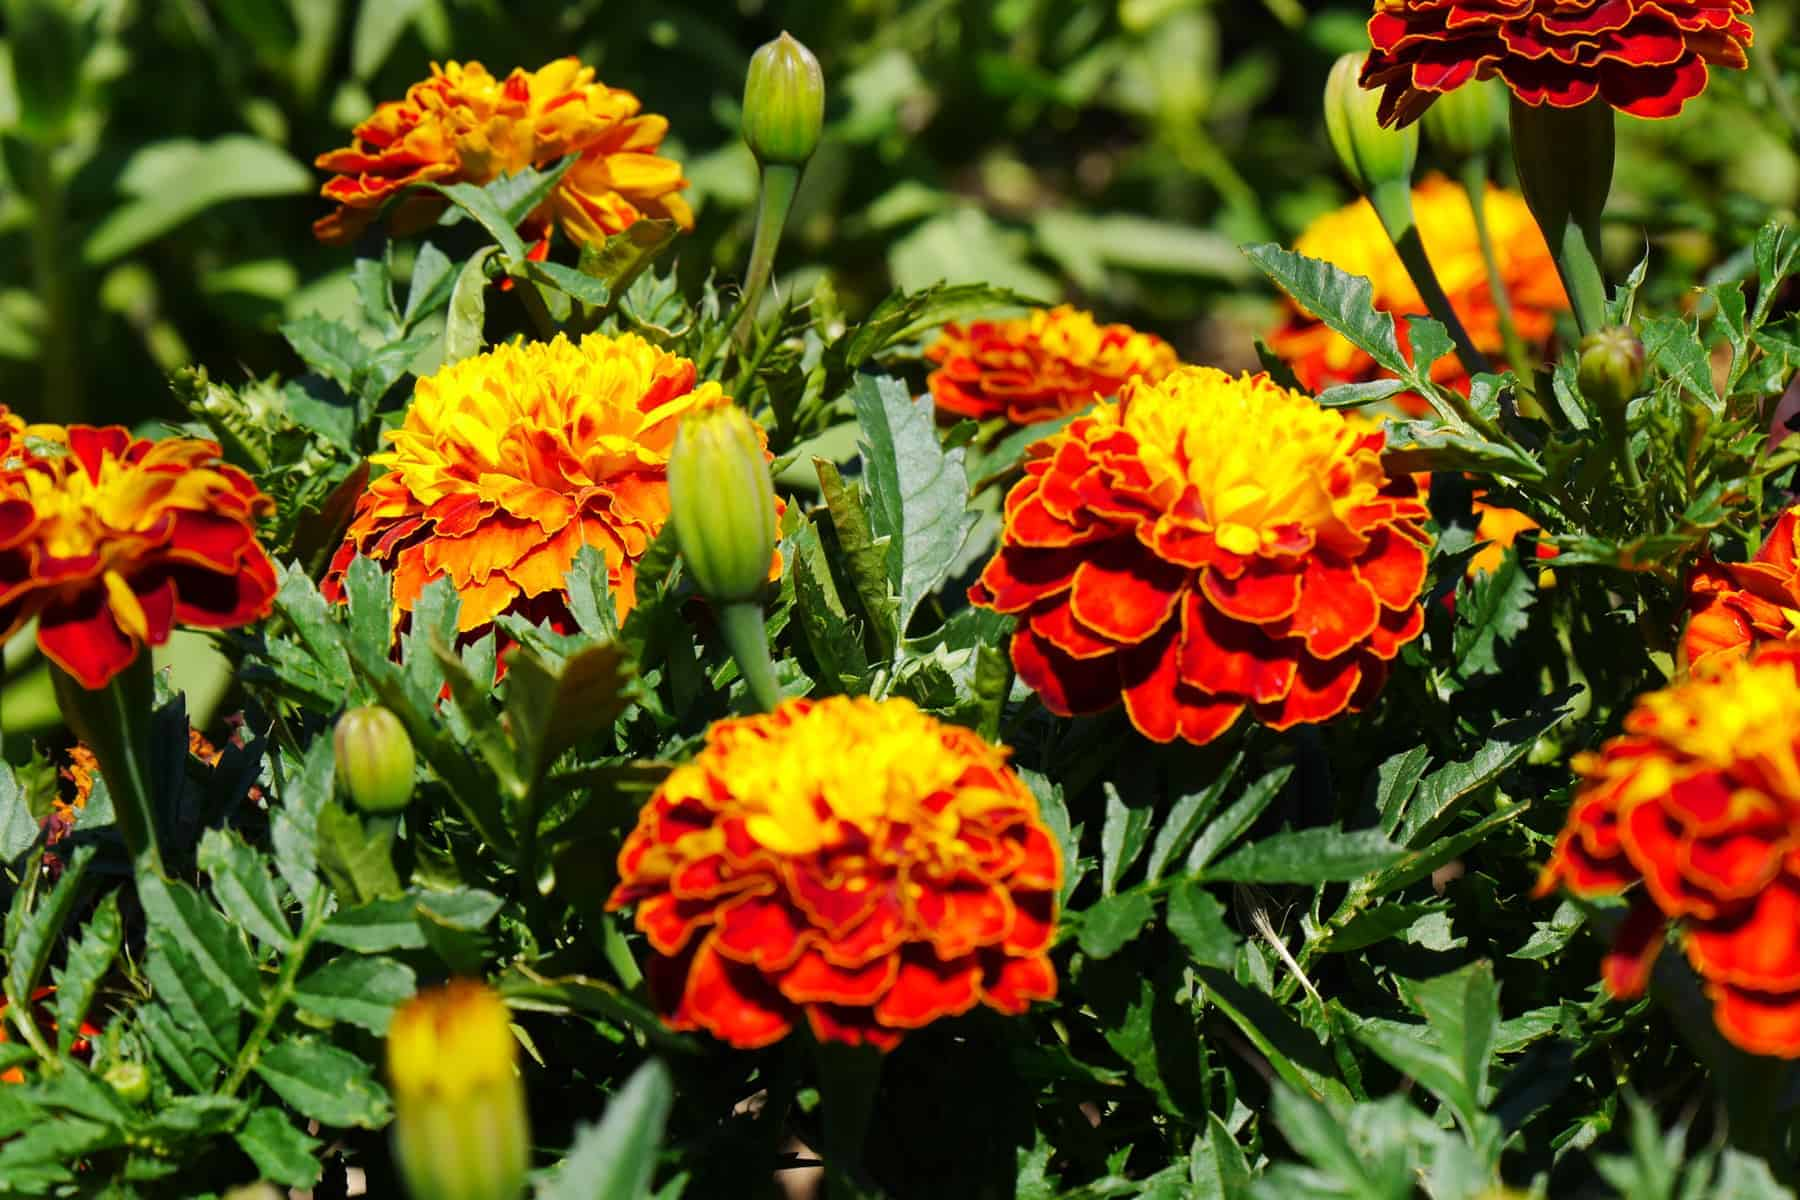 Marigold Super Hero Spry at Humber Arboretum, Toronto - AAS Display Garden